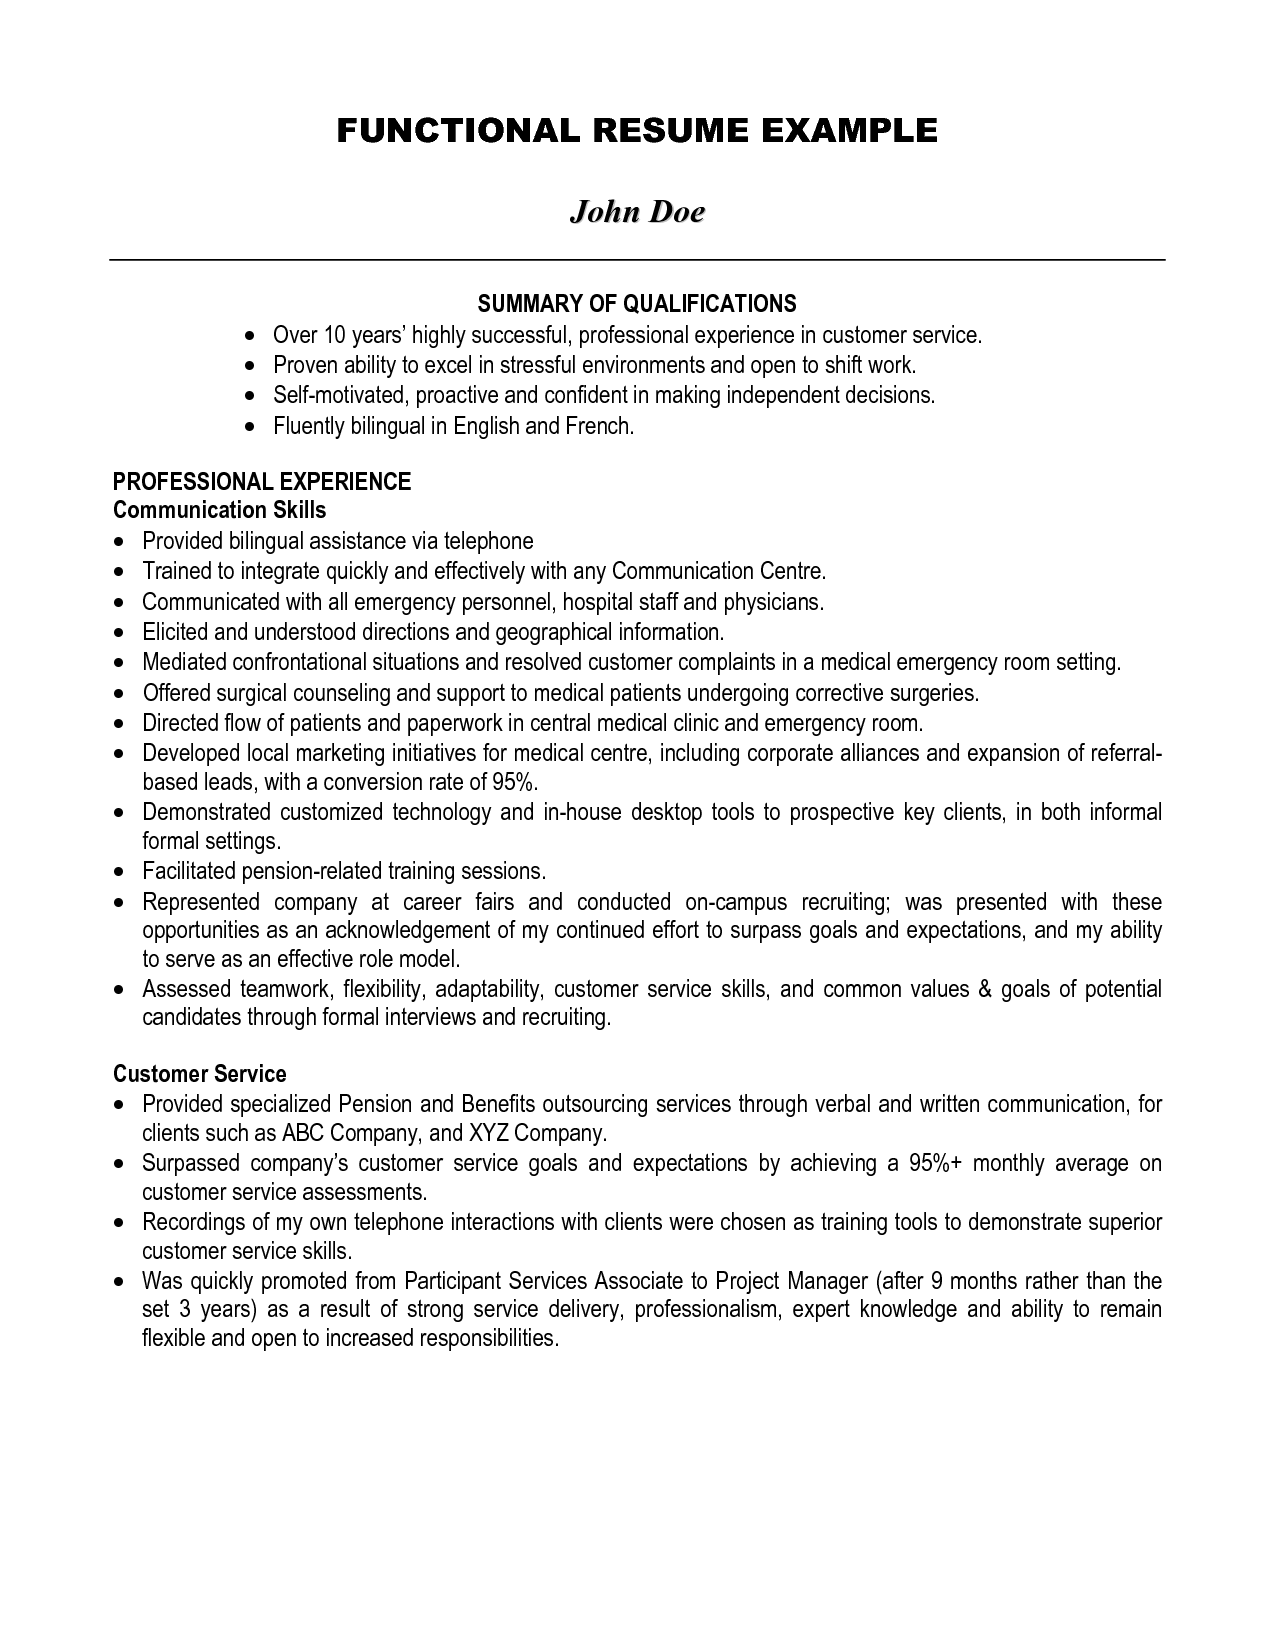 example of statement of qualification resume summary of qualifications samples gallery photos - Example Qualifications For Resume